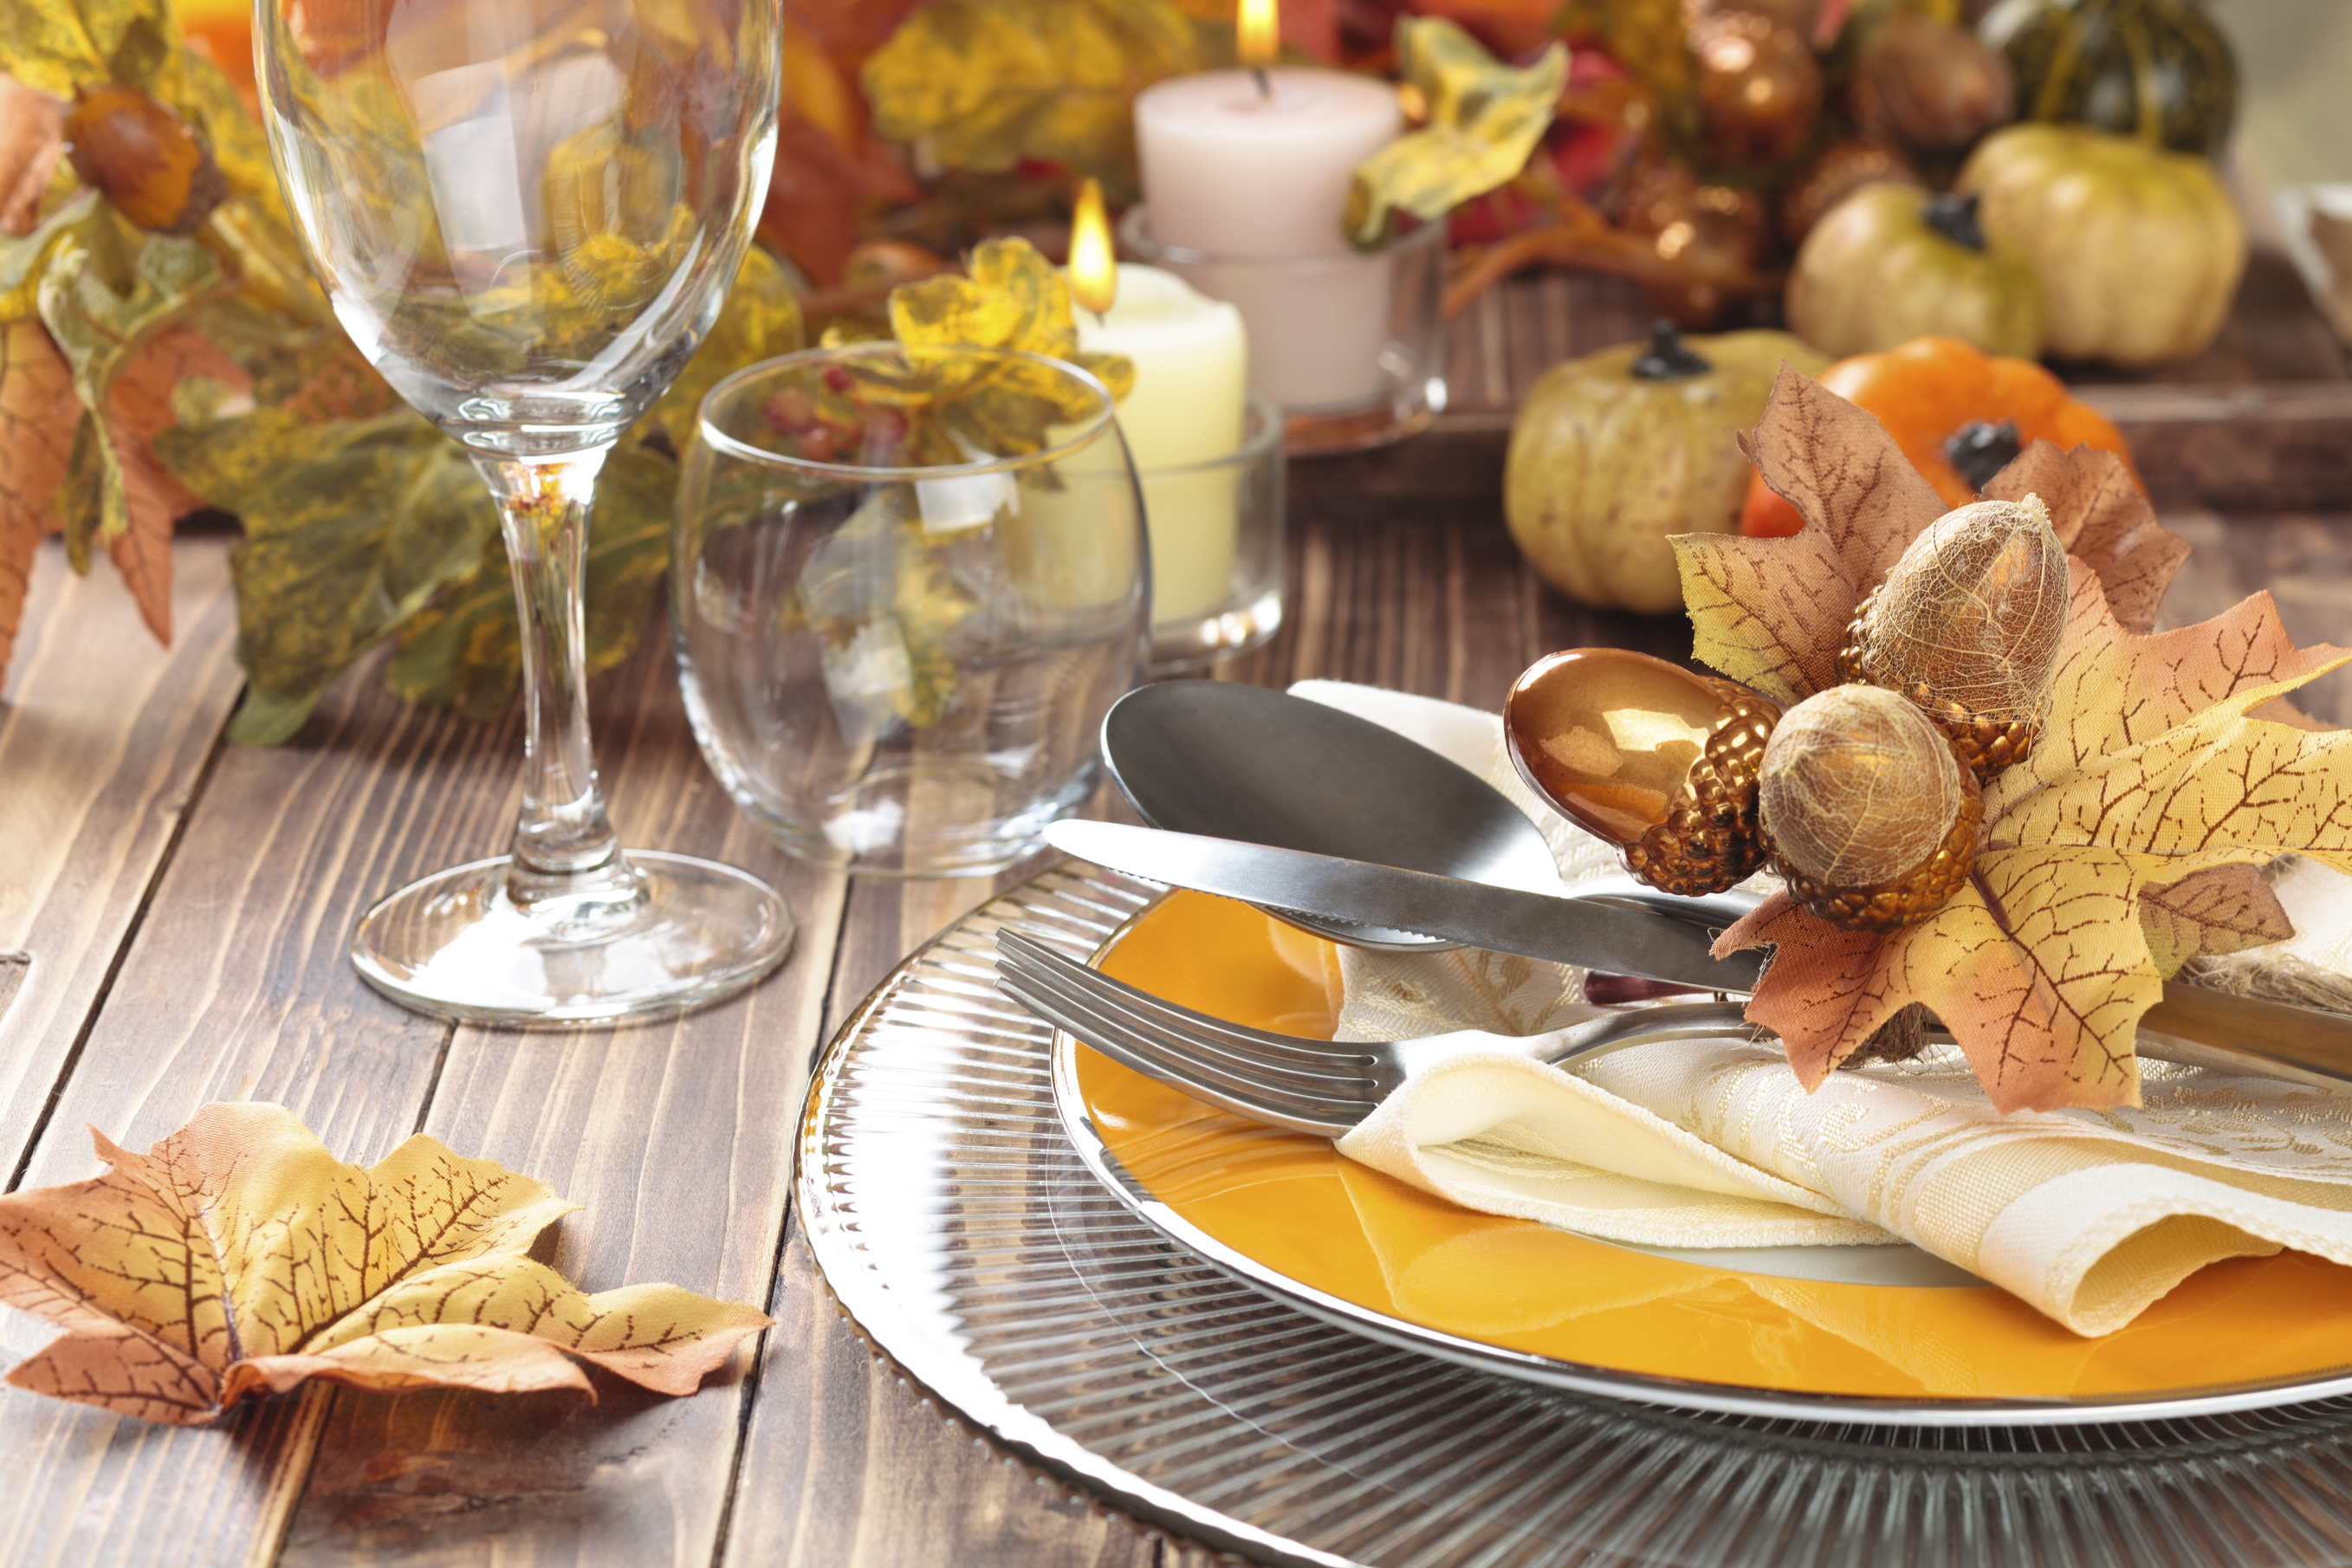 Autumn place setting with leaves, candles, and pumpkin.